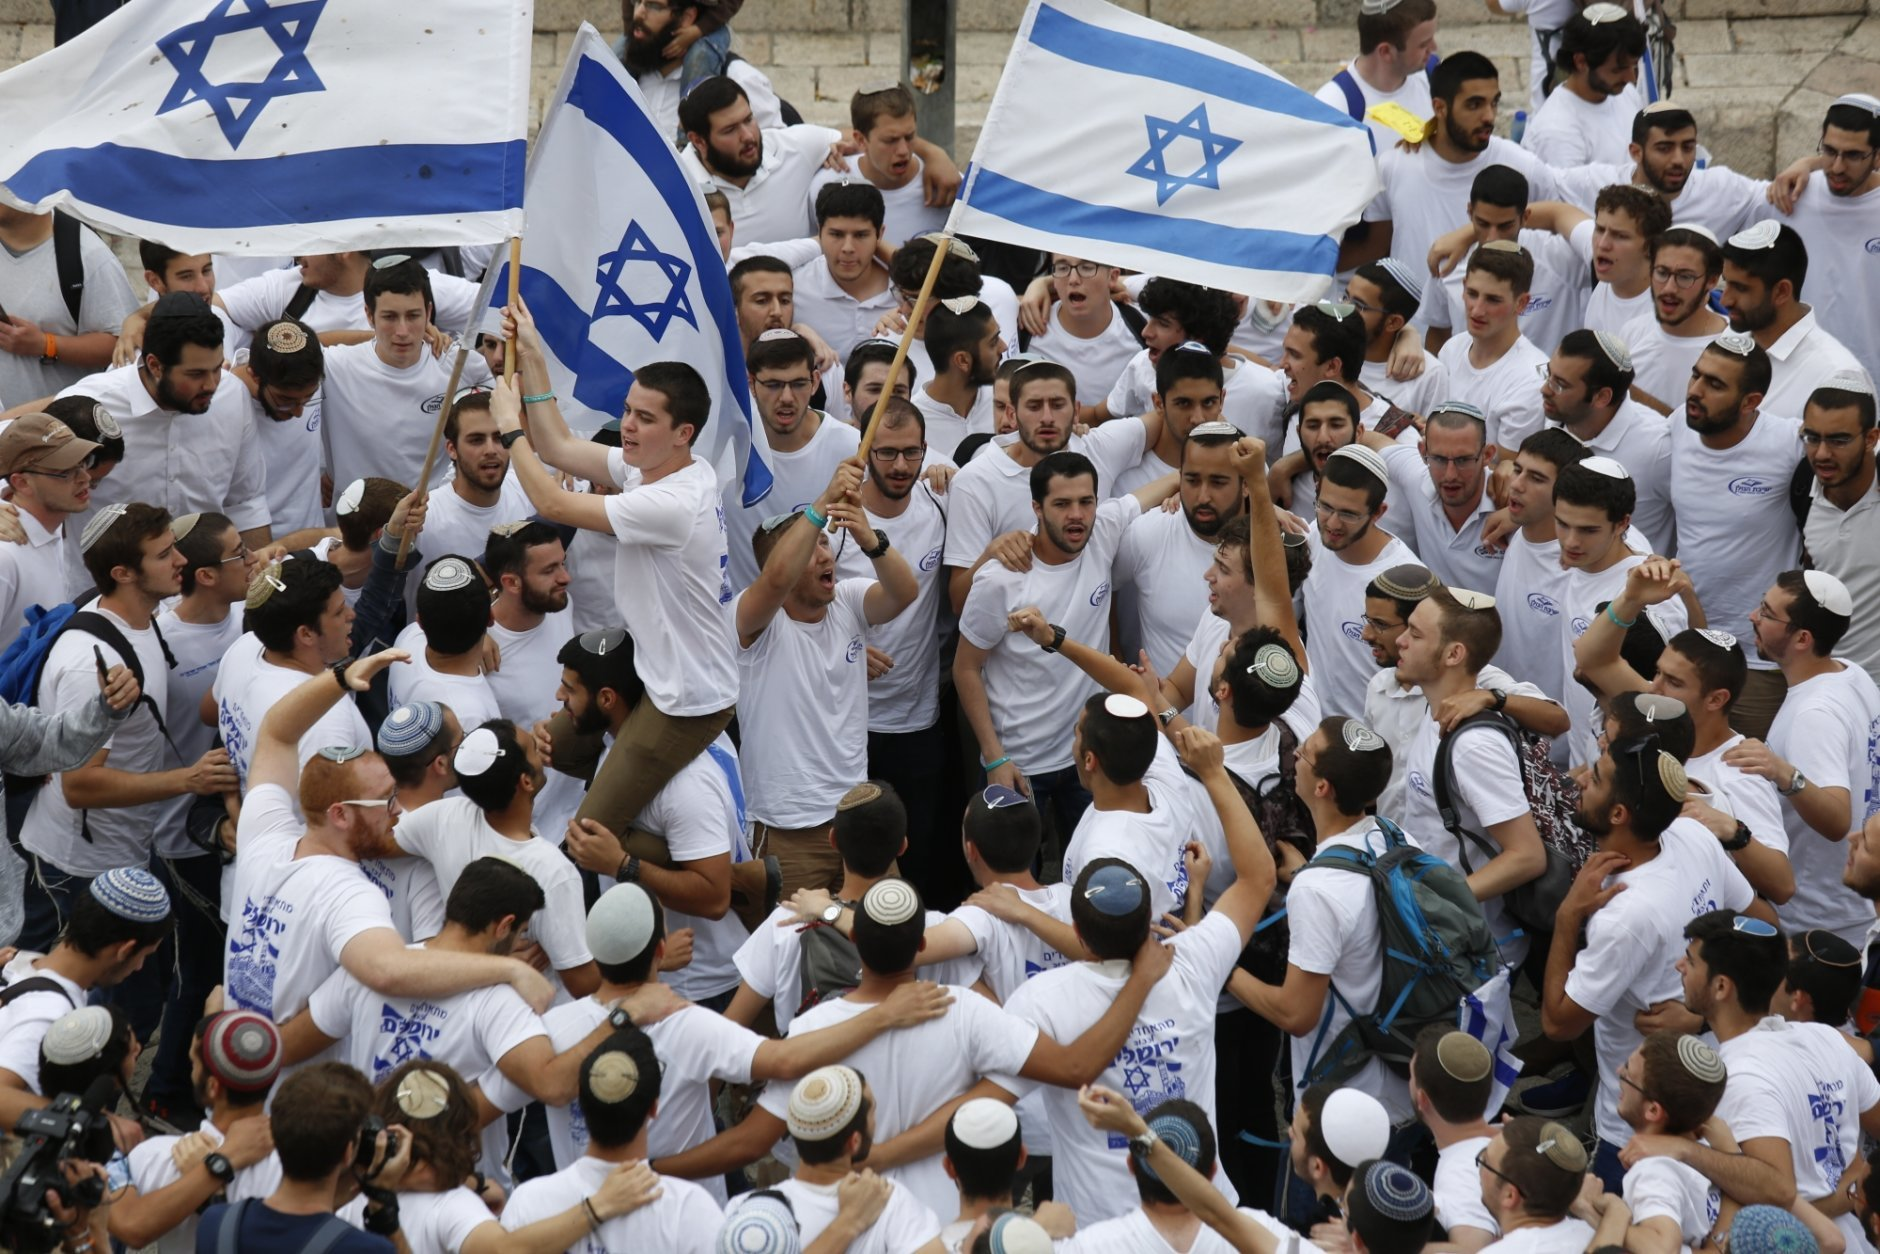 Israeli youths wave national flags outside the Old City's Damascus Gate, in Jerusalem, Sunday, May 13, 2018. Israel is marking the 51st anniversary of its capture of east Jerusalem in the 1967 Middle East war. (AP Photo/Ariel Schalit)